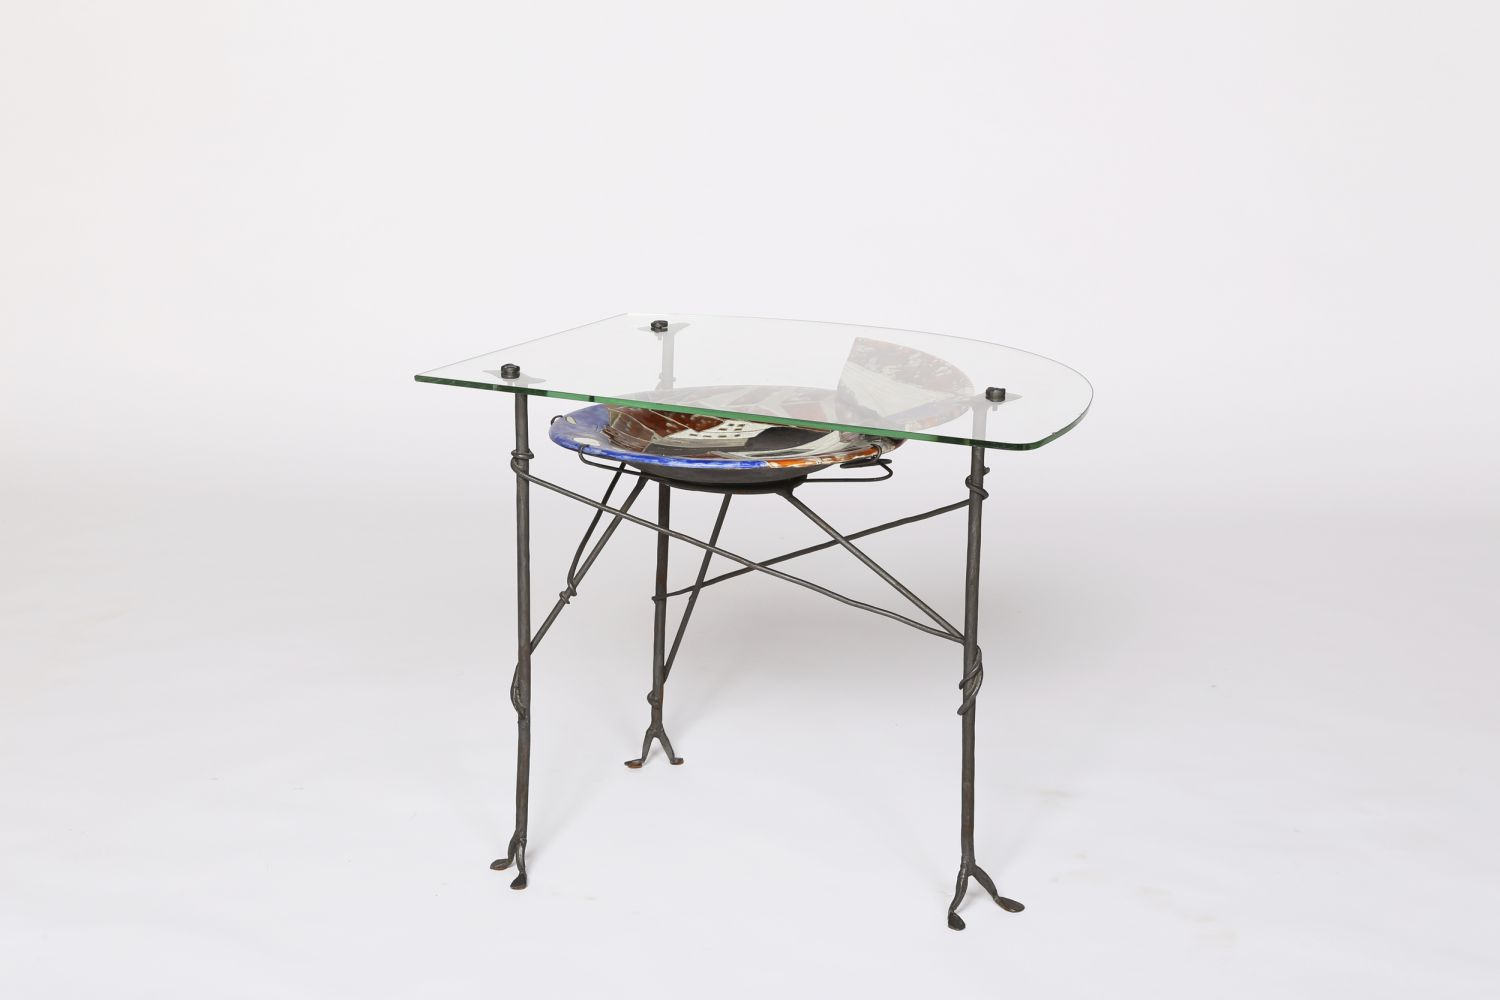 Les Archange' ceramic and glass coffee table, full straight view